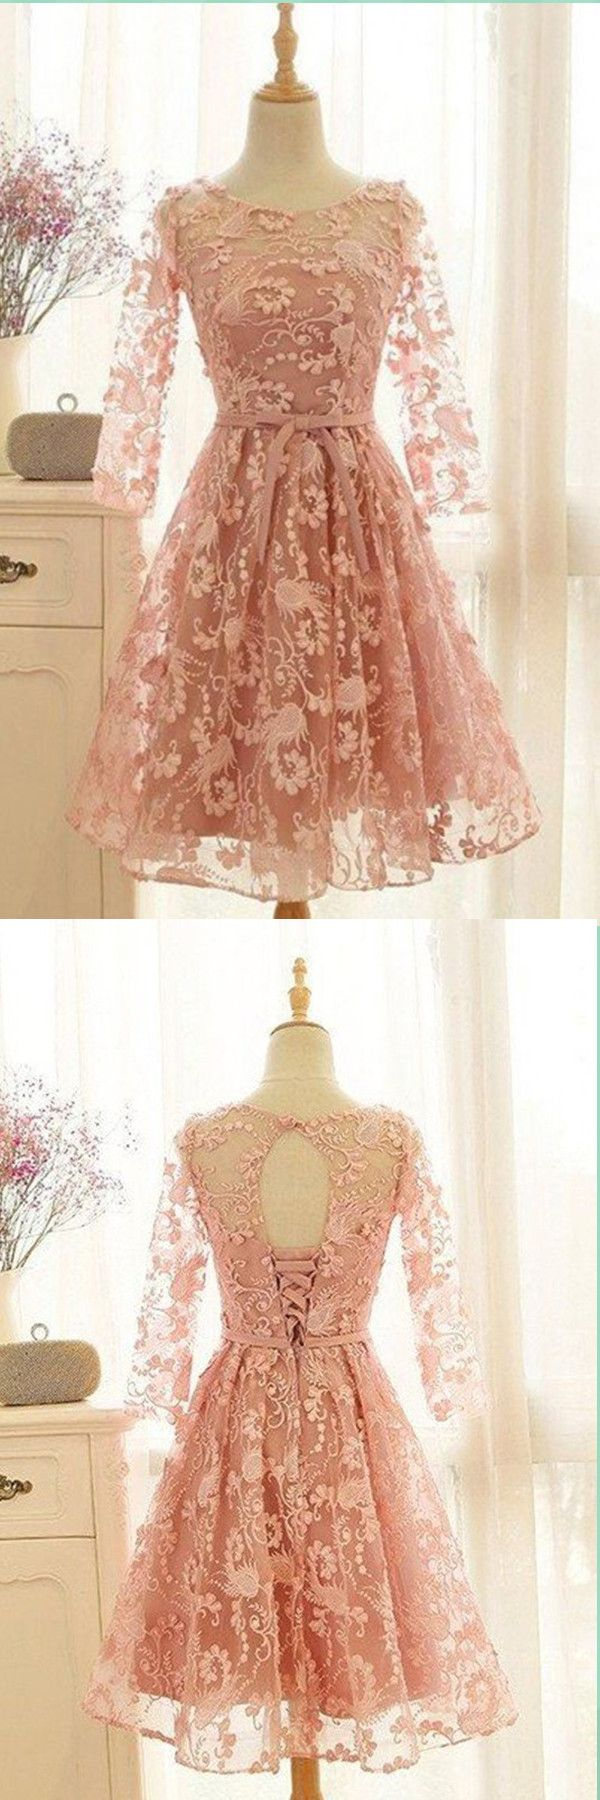 Awesome peach full sleeves prom dress